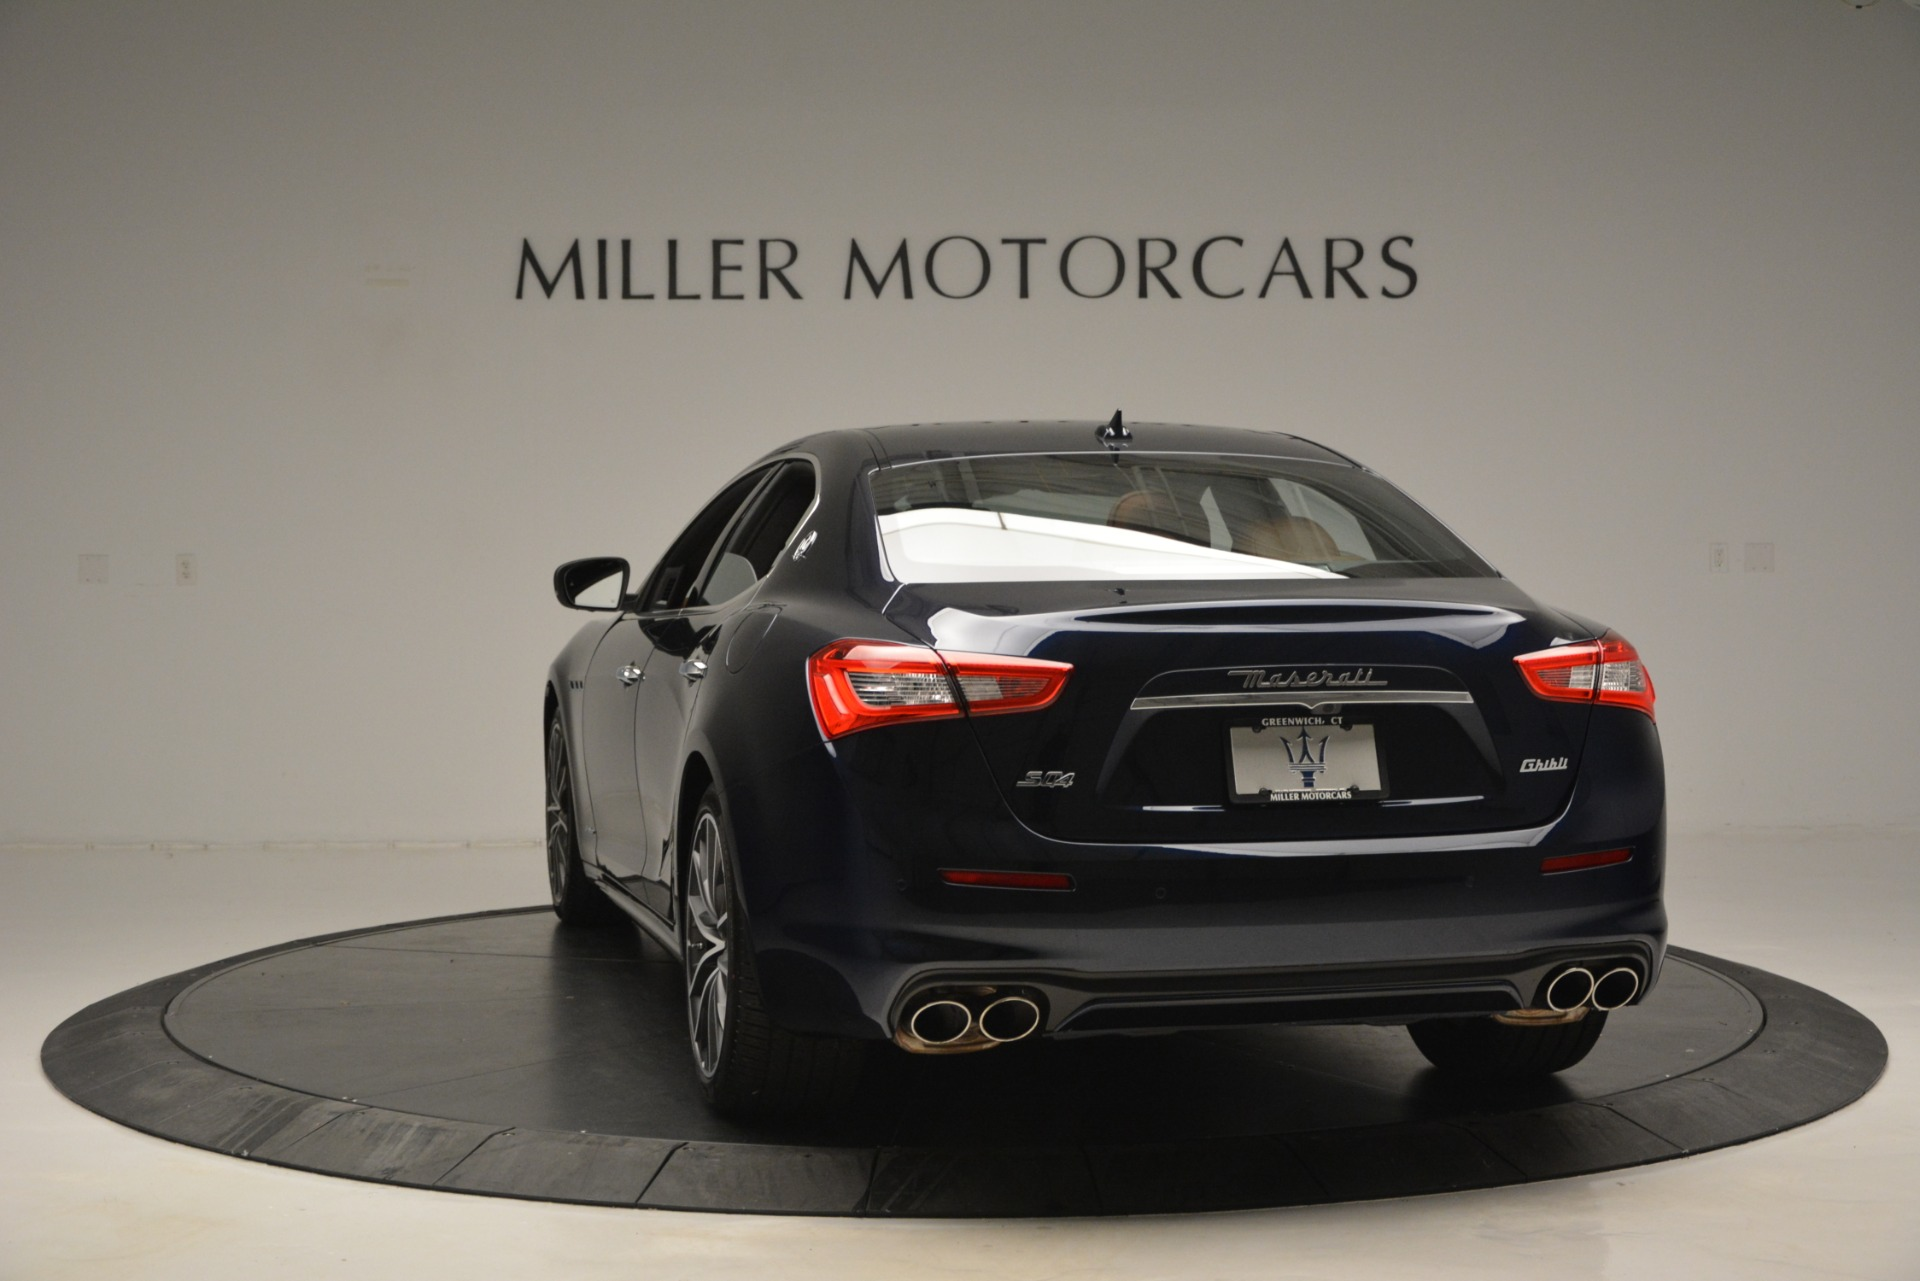 New 2019 Maserati Ghibli S Q4 GranLusso For Sale In Greenwich, CT 2882_p8